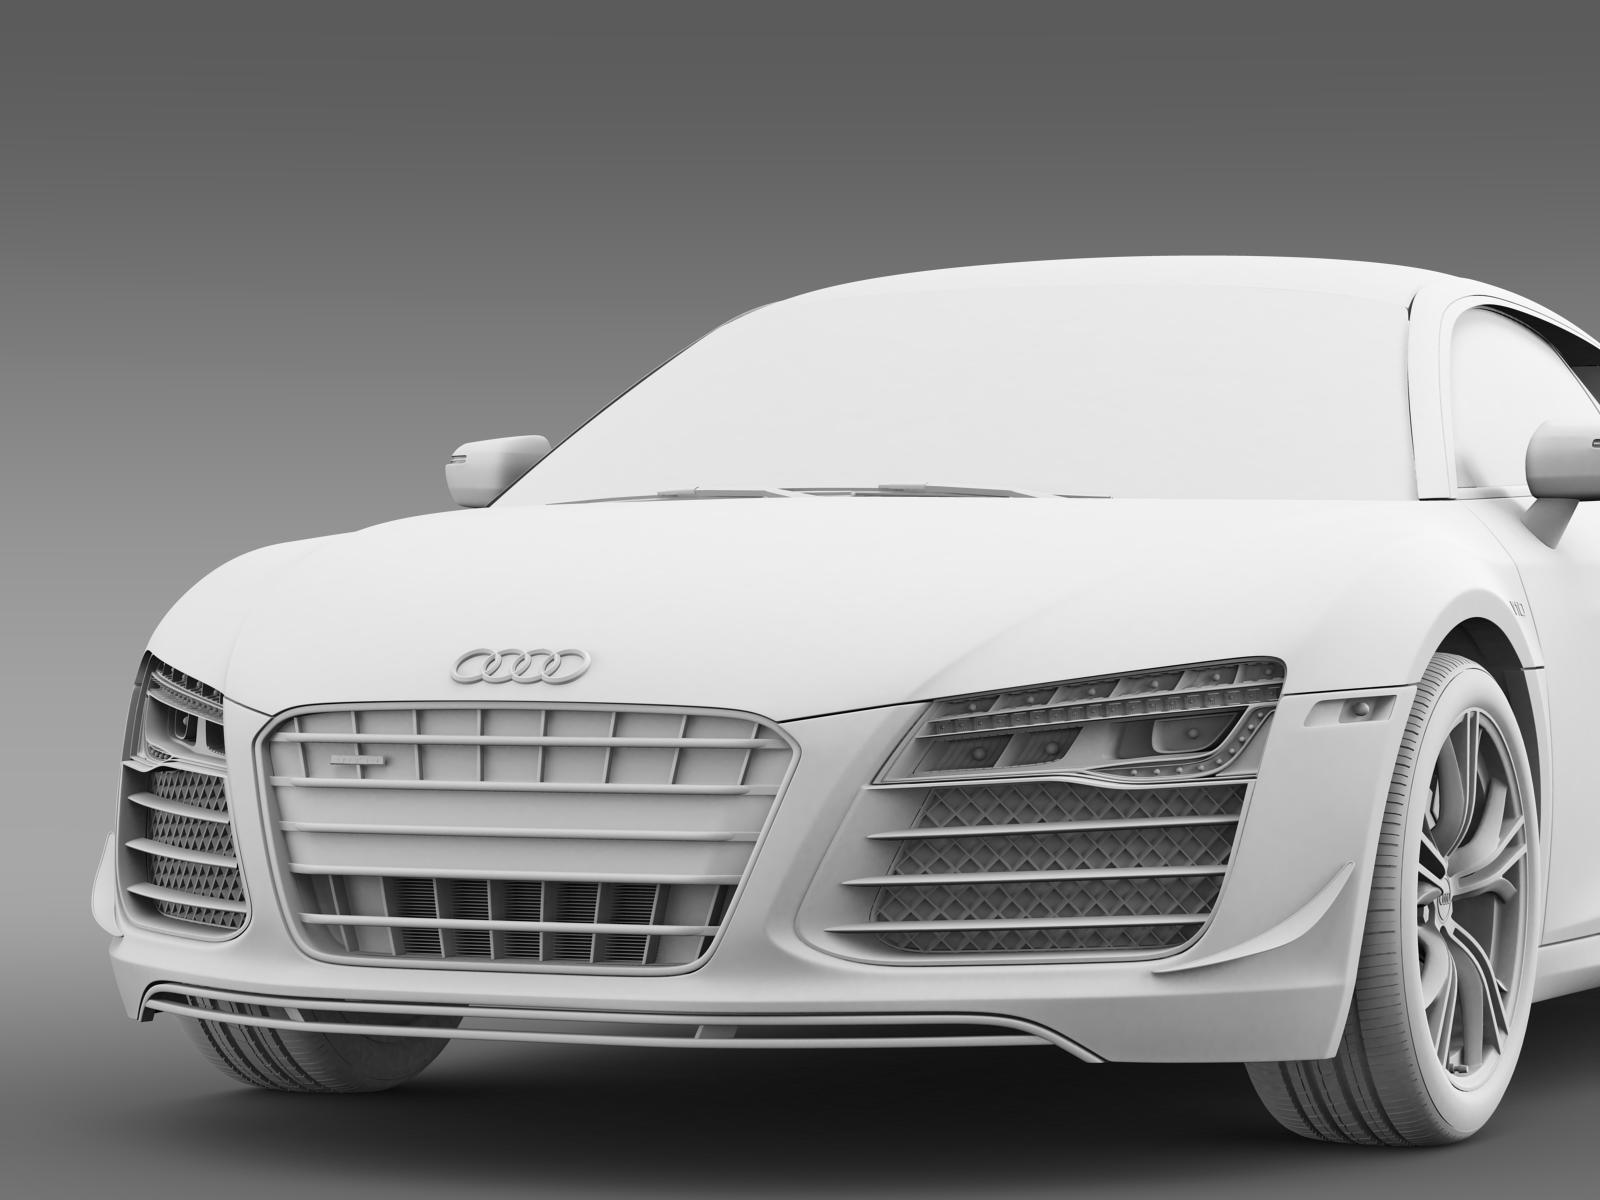 audi r8 competition 2015 3d model buy audi r8. Black Bedroom Furniture Sets. Home Design Ideas